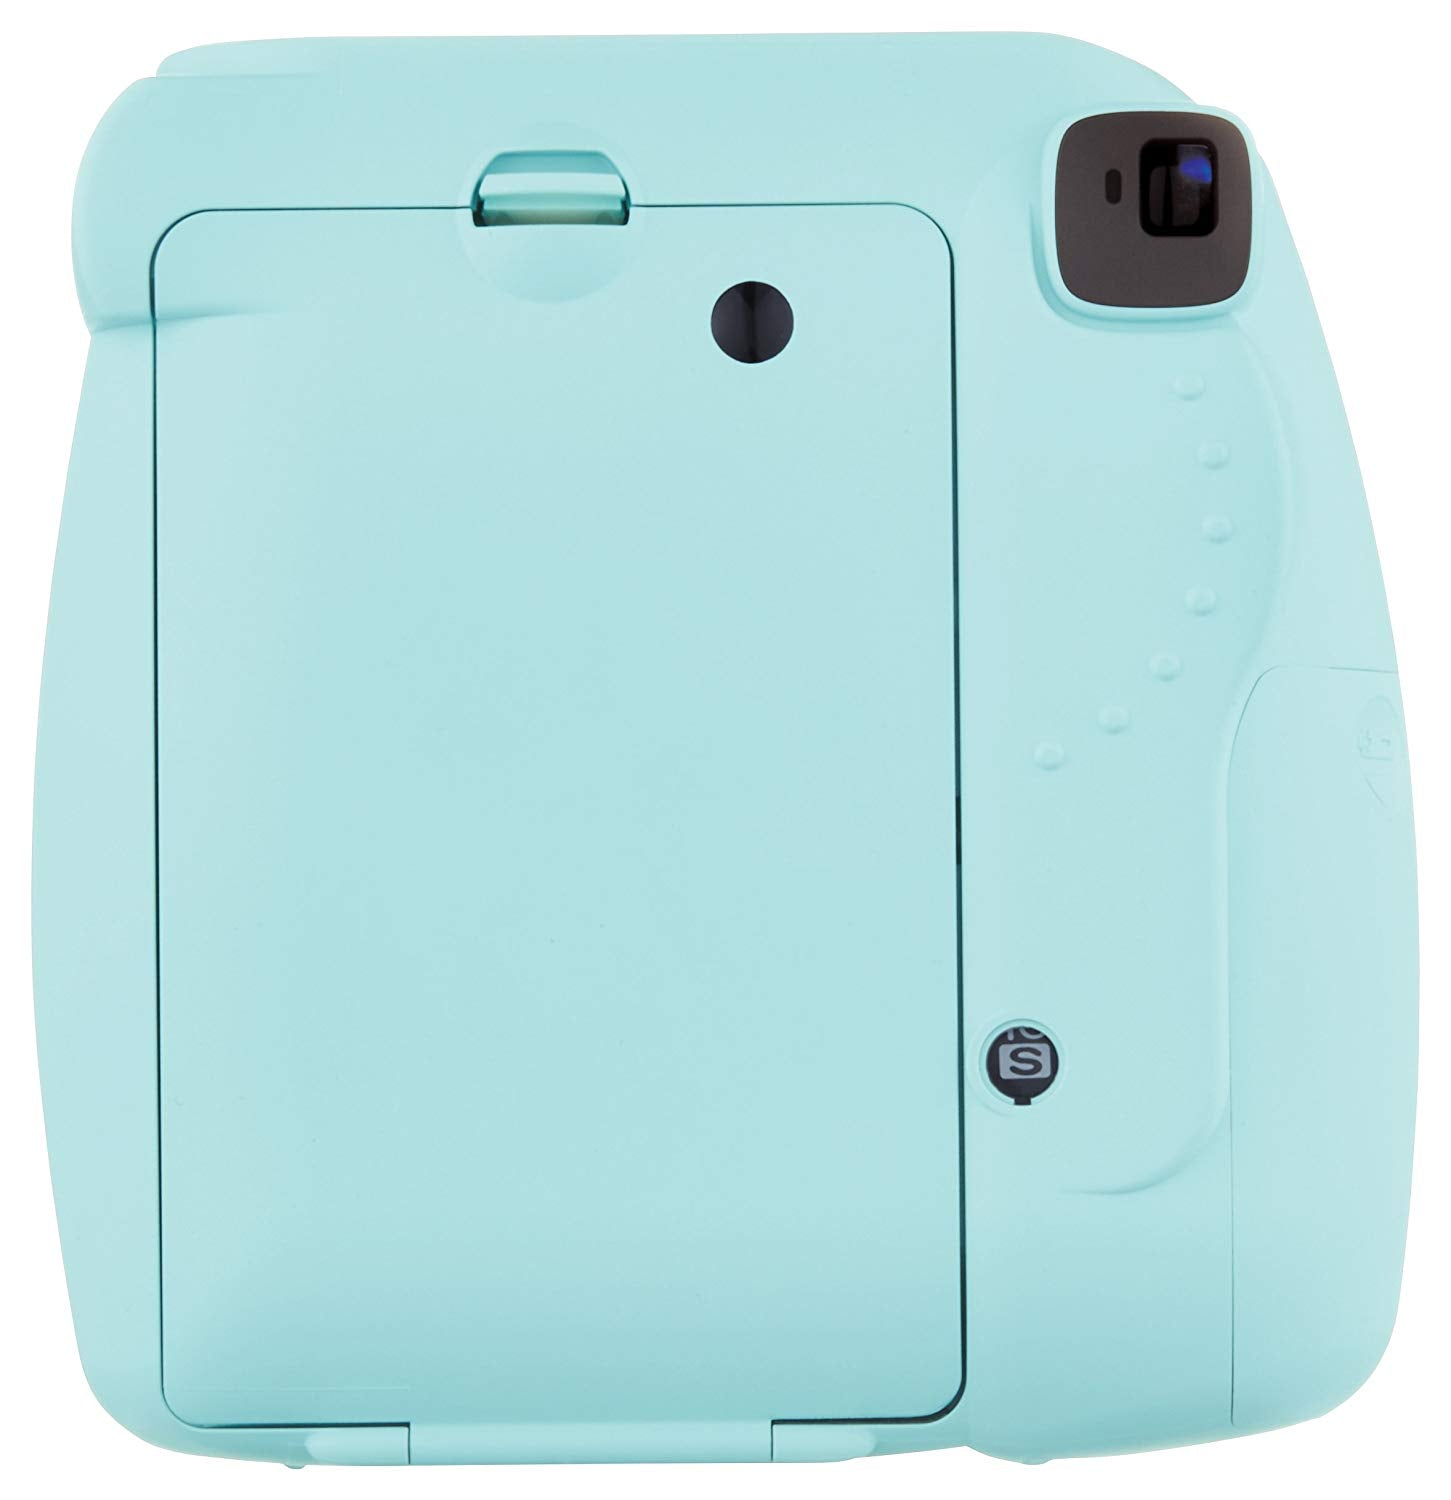 Fujifilm Instax Mini 9 Instant Camera (Ice Blue)